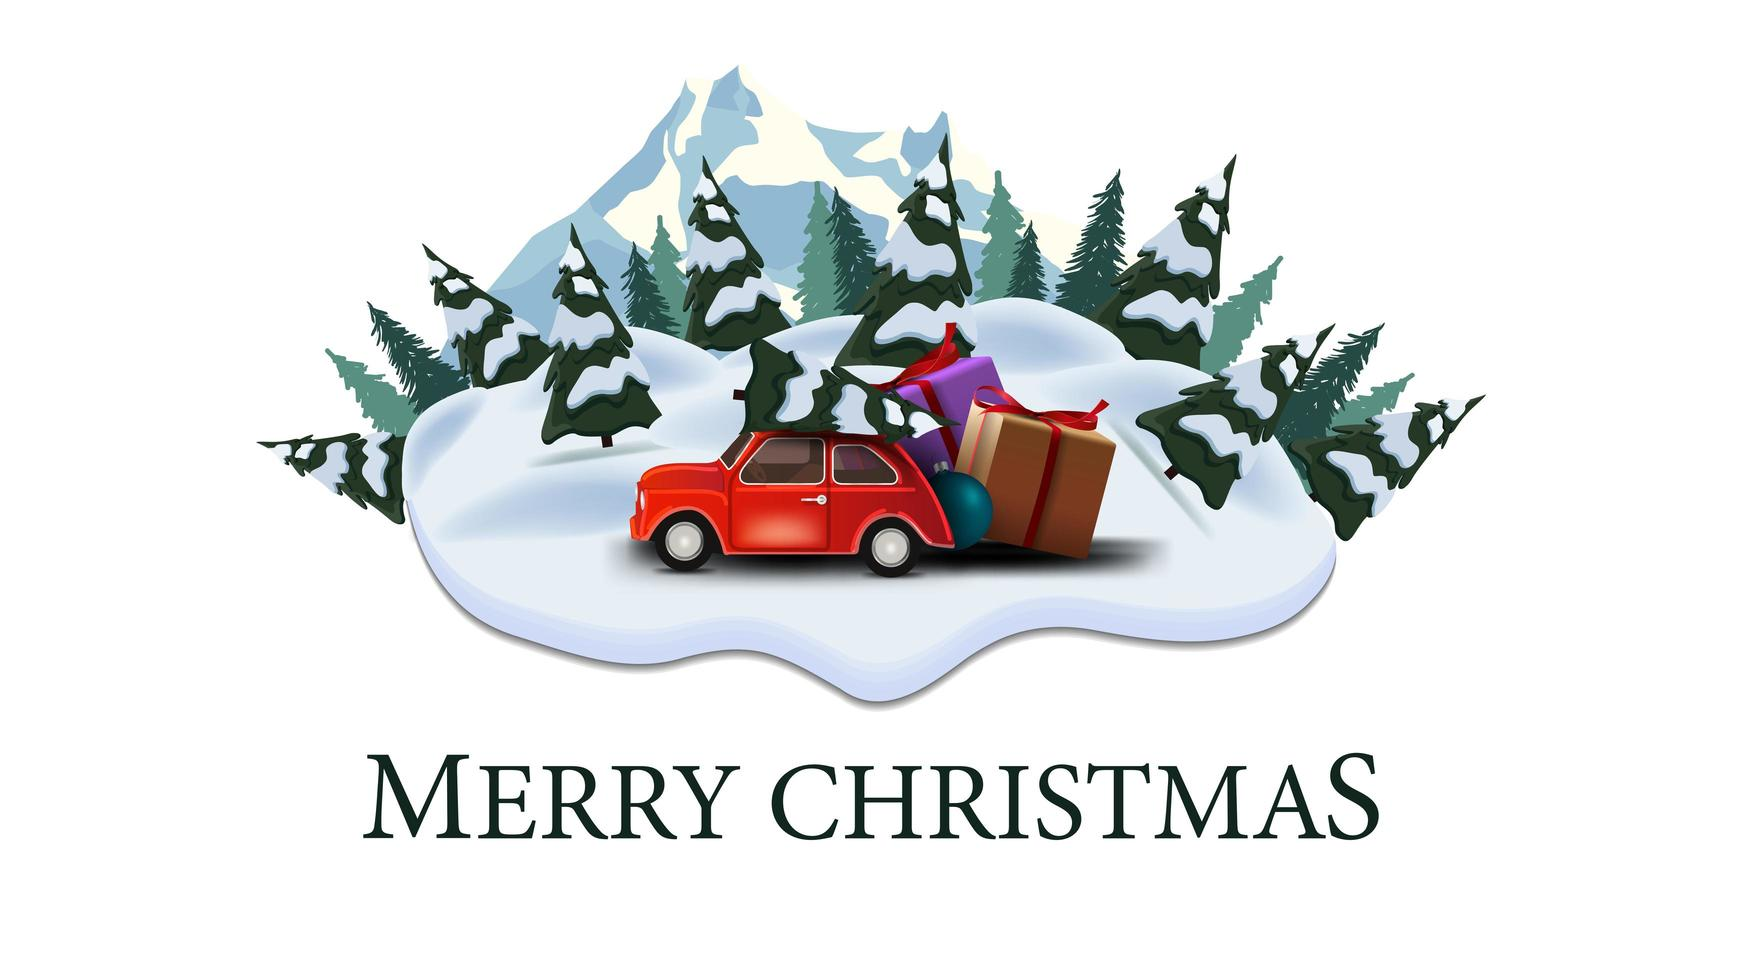 Merry Christmas, modern postcard with pines, drifts, mountain and red vintage car carrying Christmas tree vector